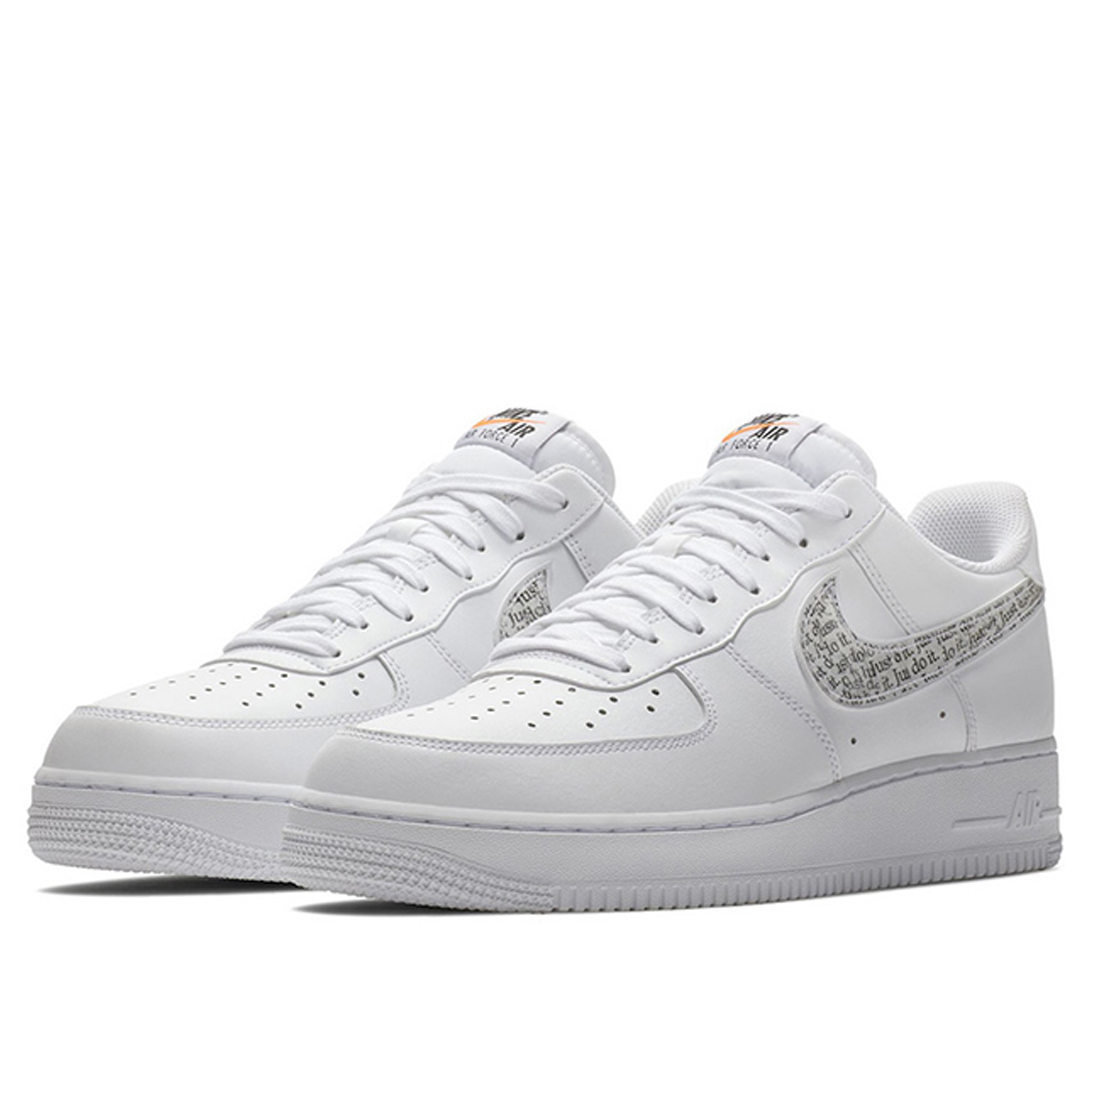 "da551f1159fd64 Мужские кроссовки Nike Air Force 1 '07 LV8 ""Just Do It"" Pack"